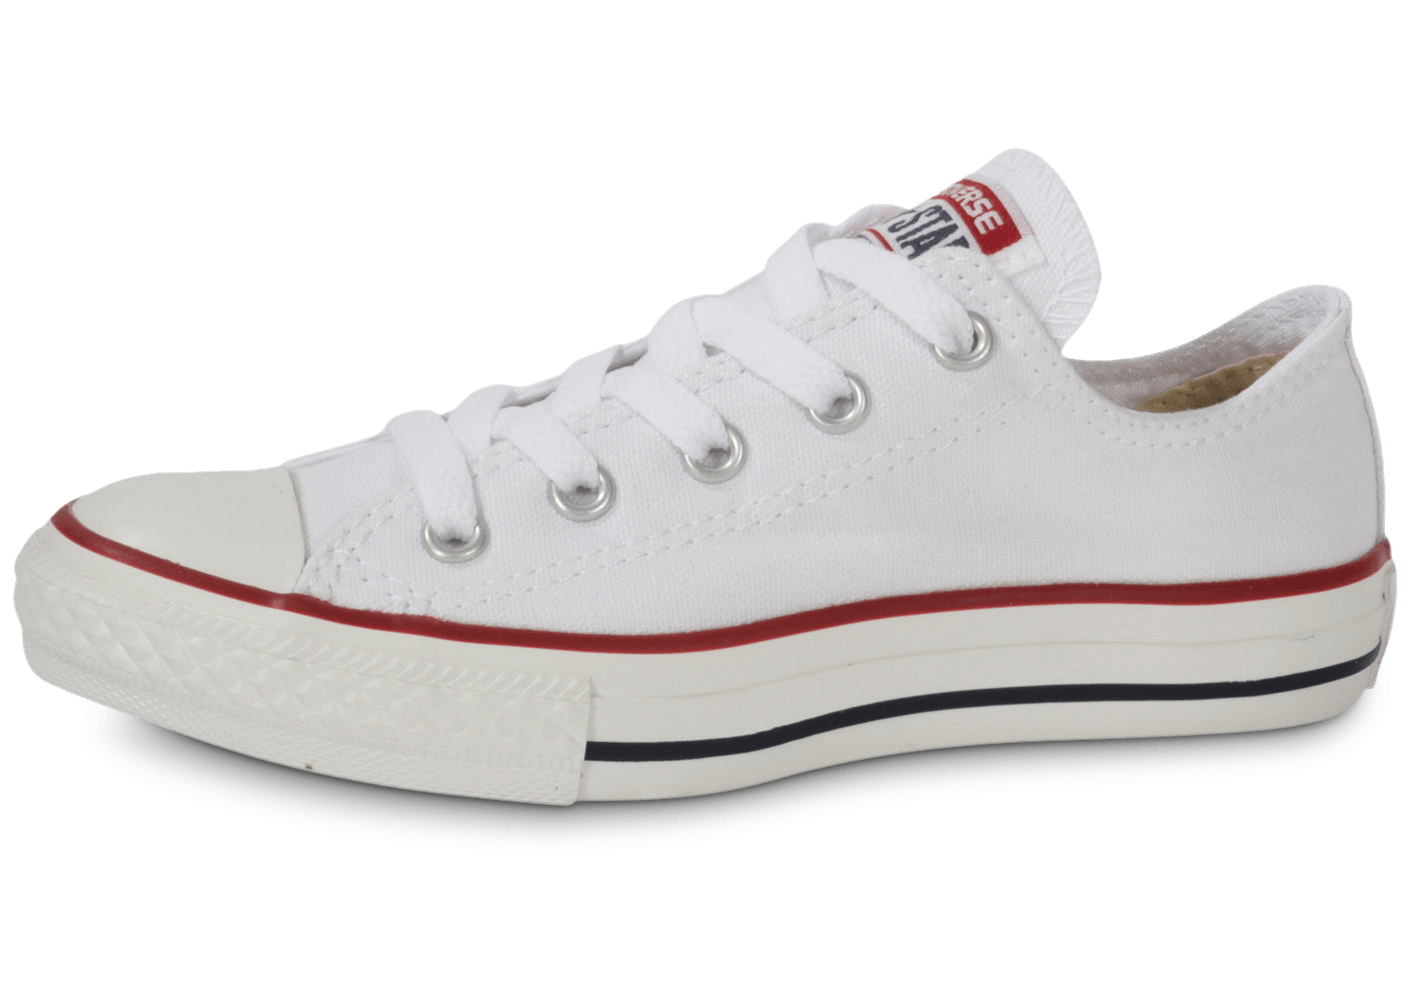 converse chuck taylor all star enfant basse blanche. Black Bedroom Furniture Sets. Home Design Ideas